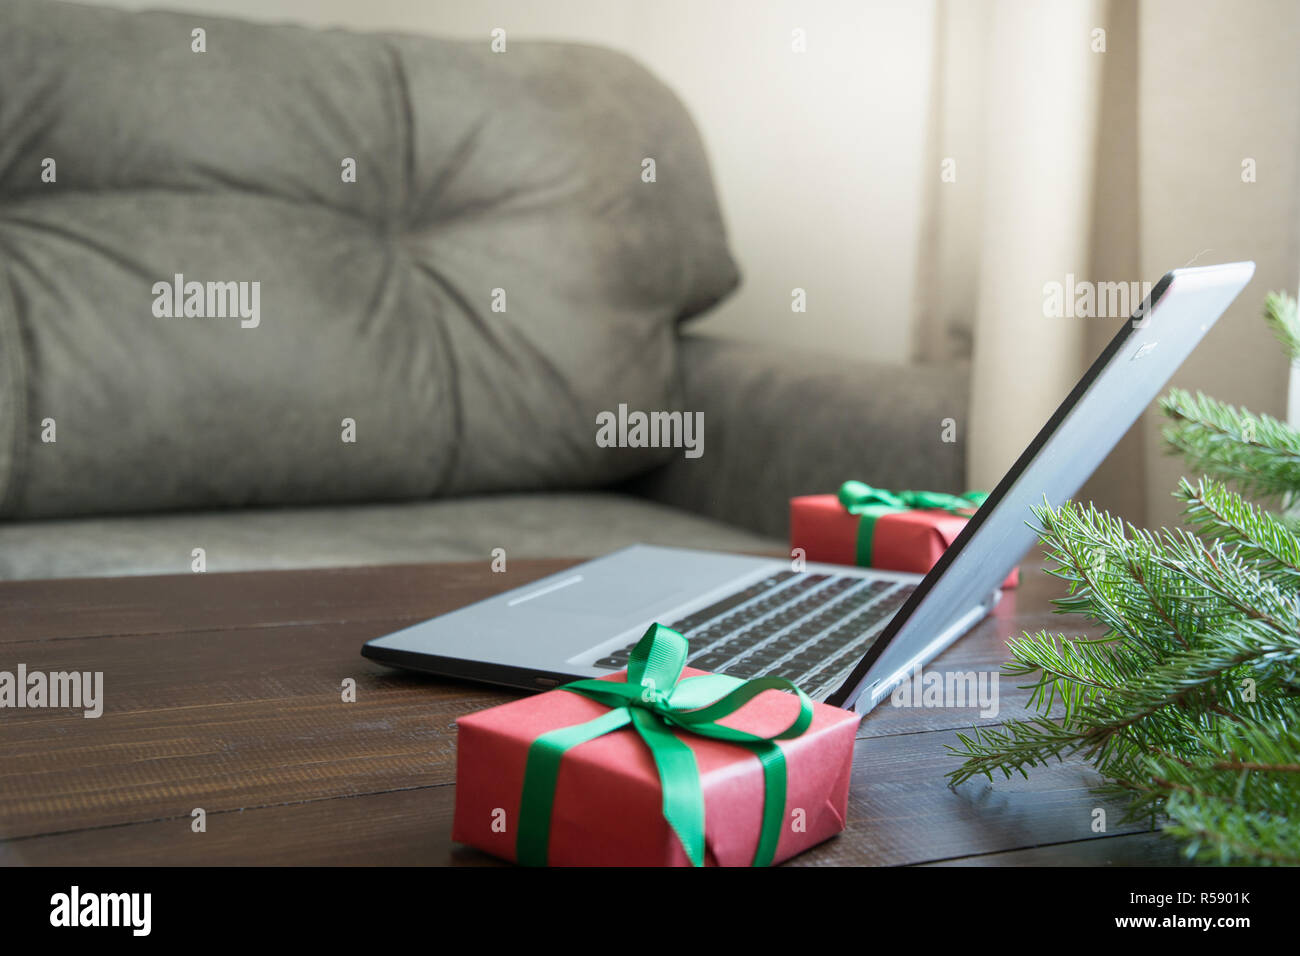 Laptop in home interior for booking, planning, search special Christmas offer. Xmas. Planing holidays. - Stock Image